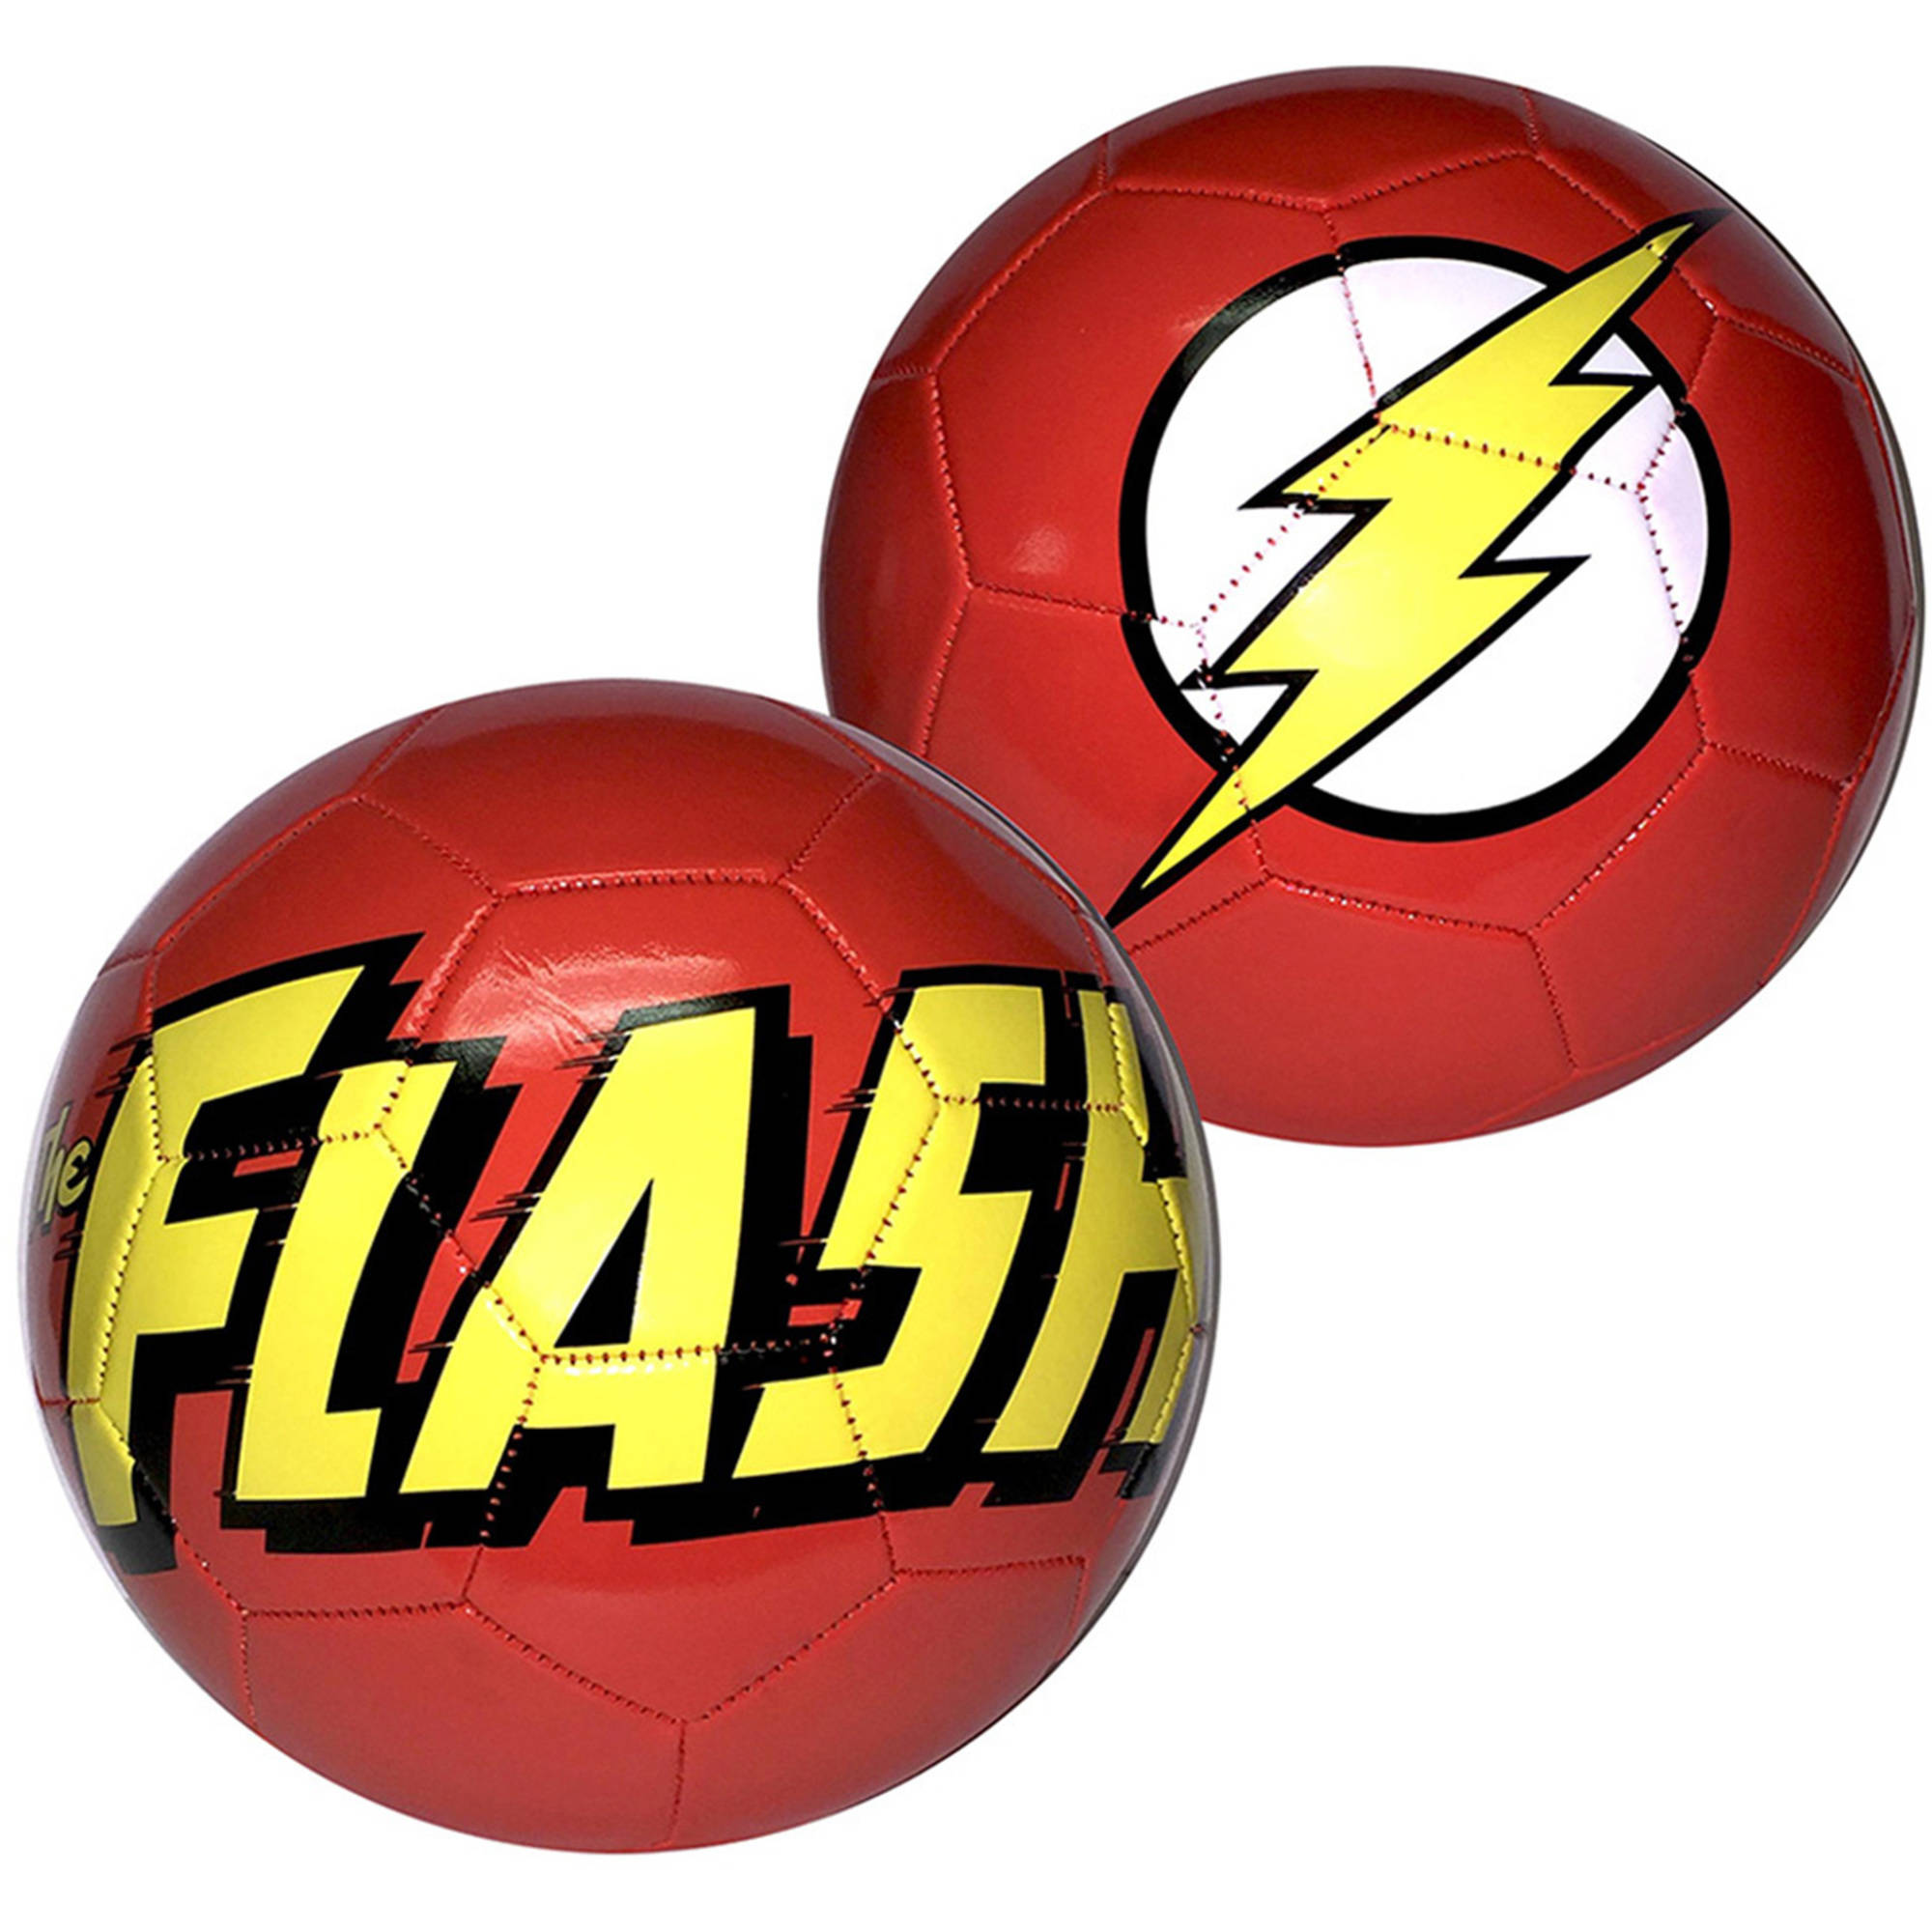 Soccerball, Size 4, FLASH